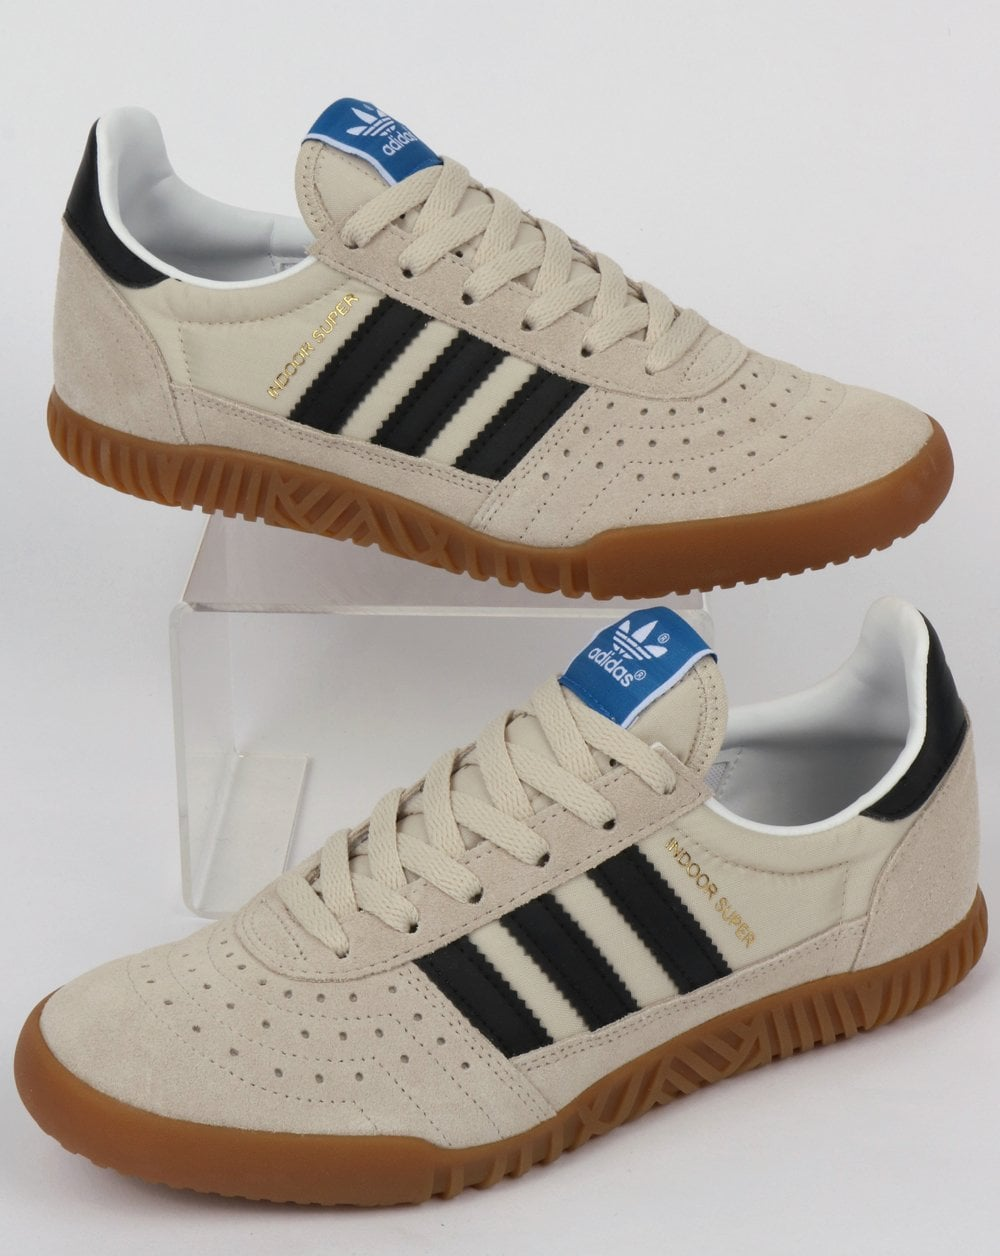 87d105ac1599dc adidas Trainers Adidas Indoor Super Trainers Clear Brown Black